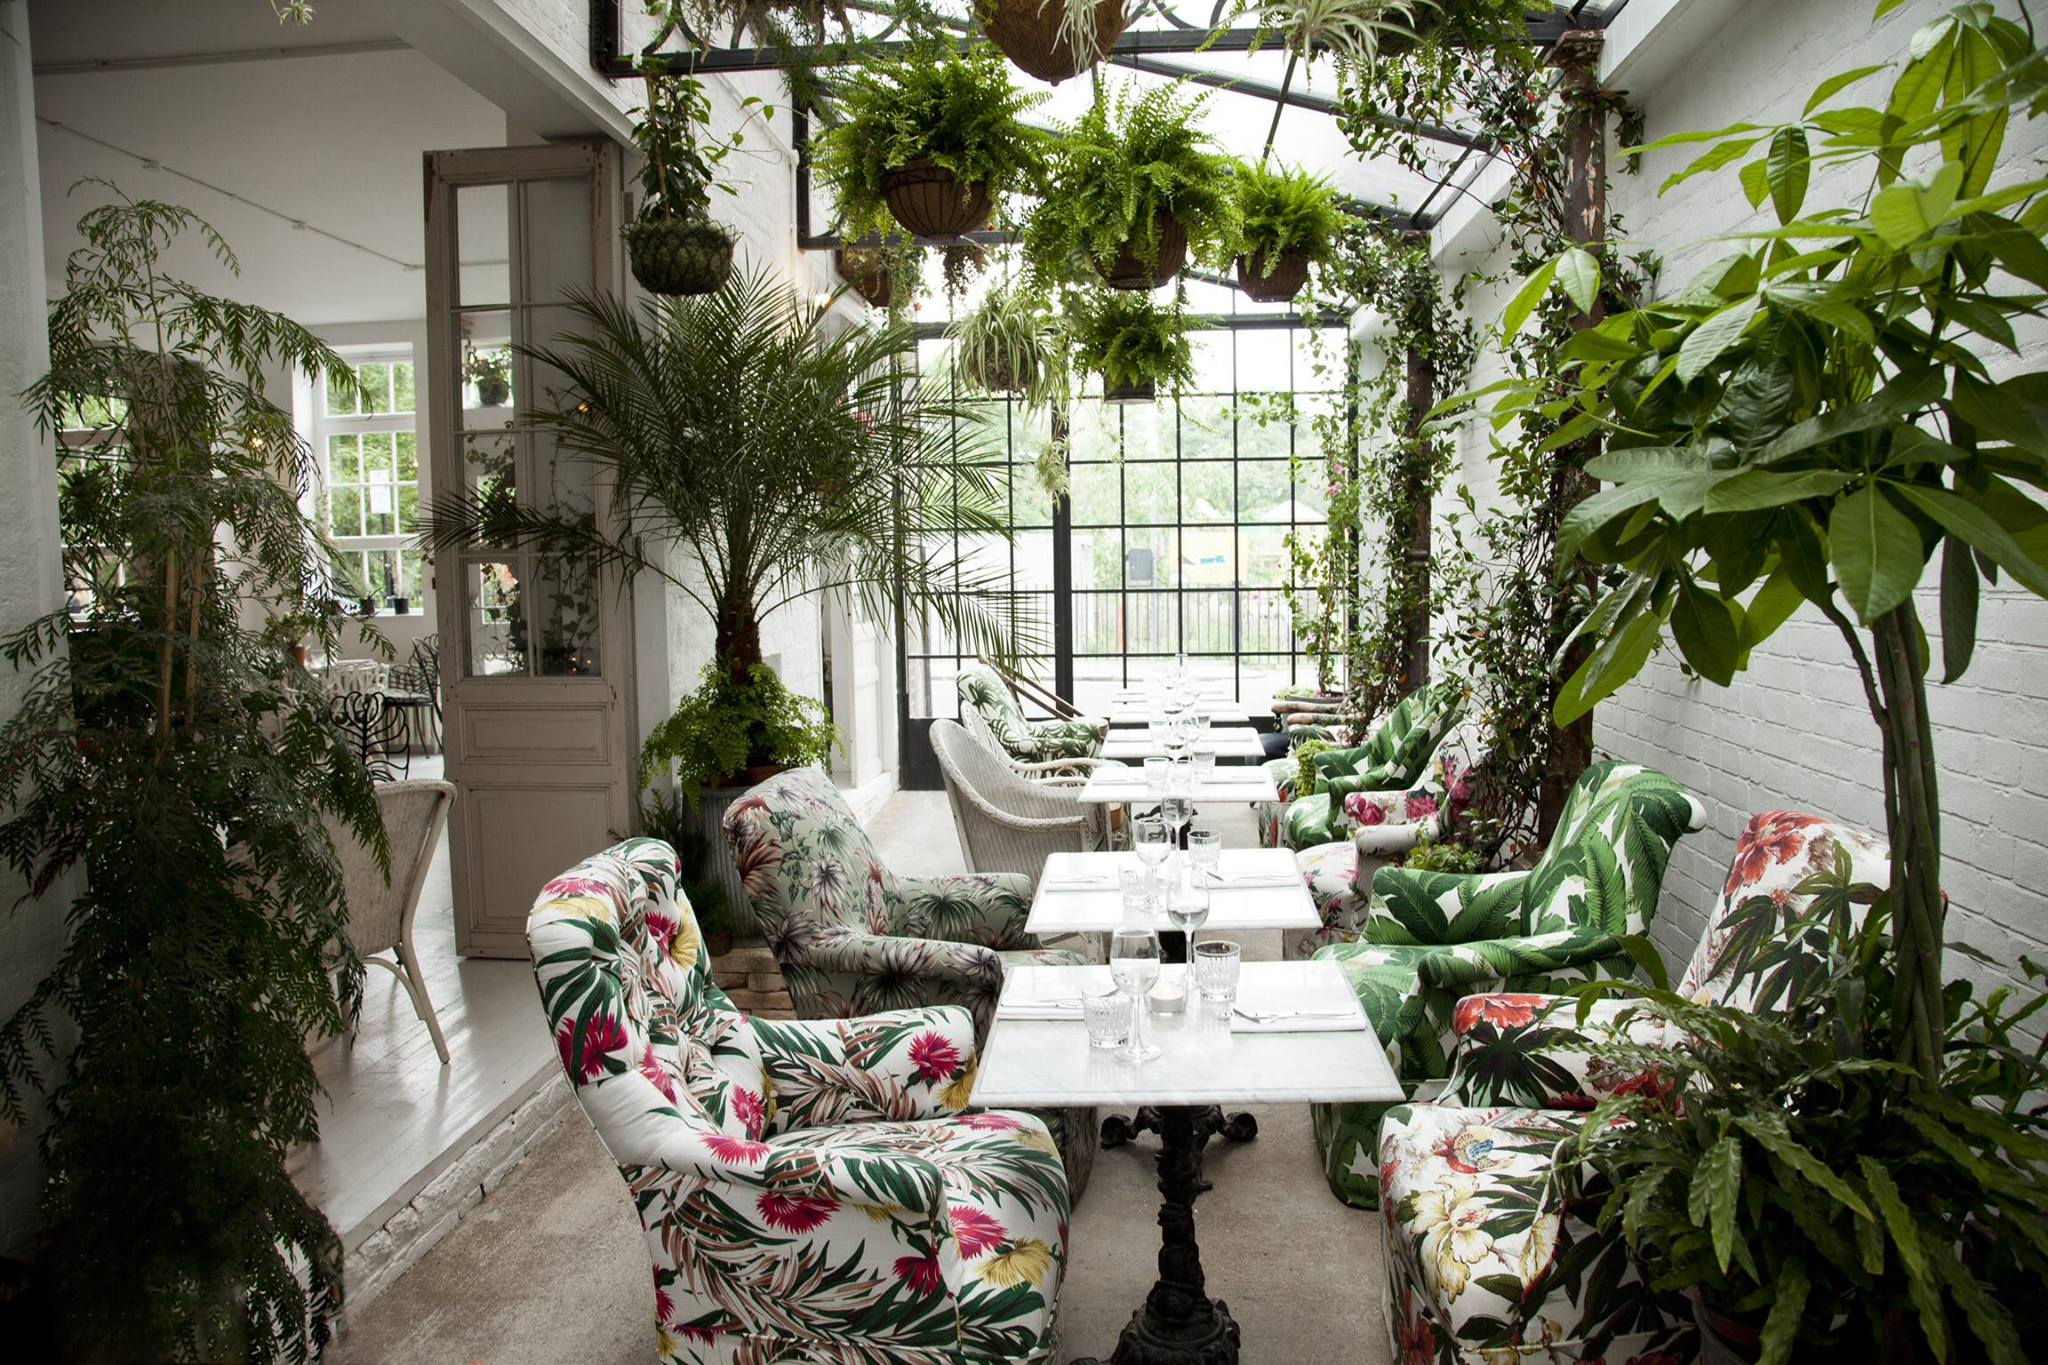 Restaurant Find: Bourne & Hollingsworth Buildings